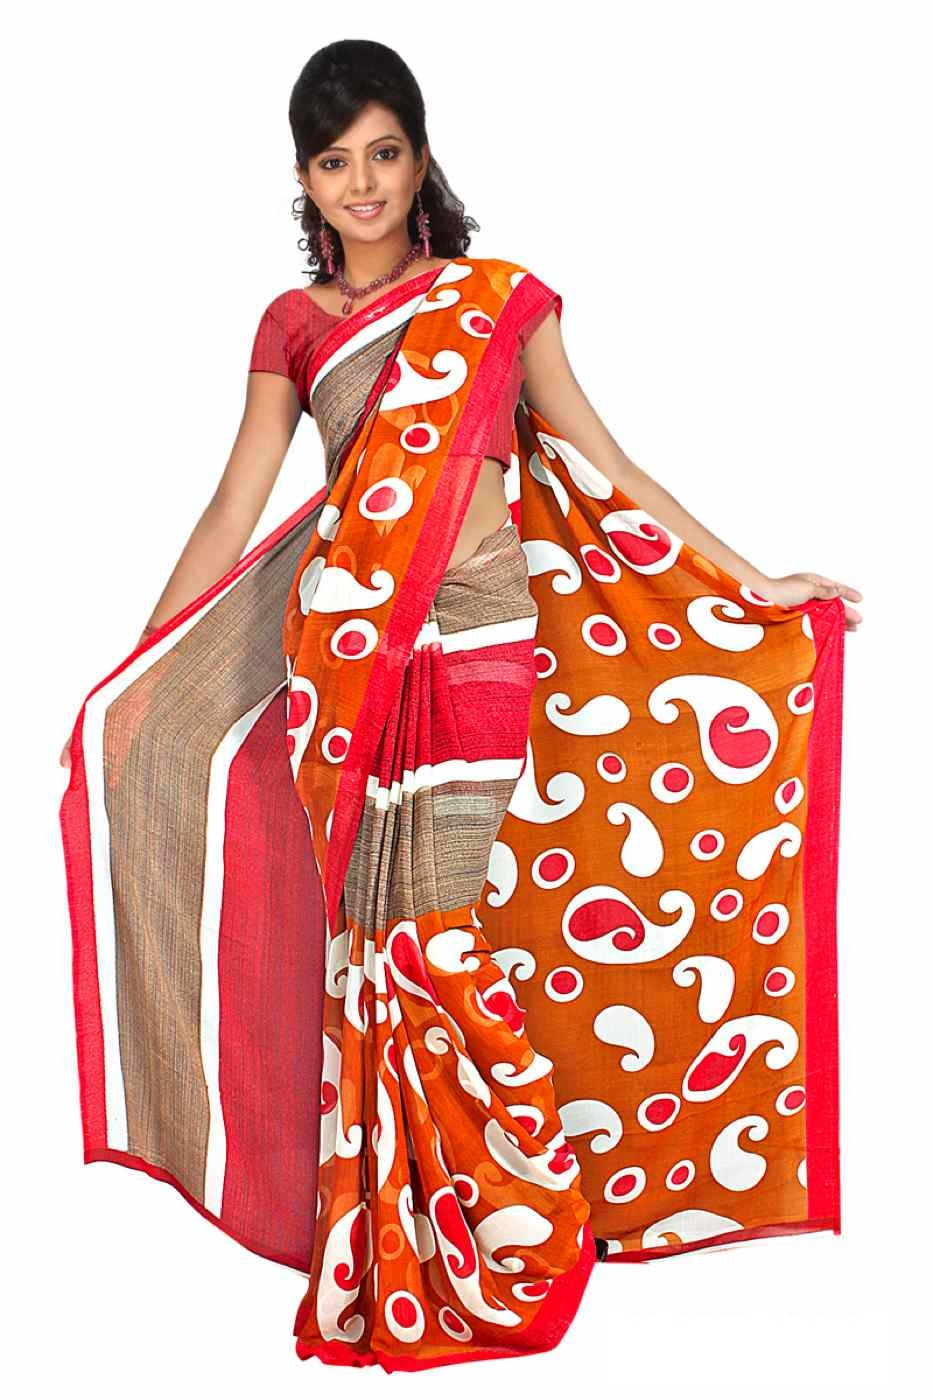 Indian Selections Bhagyasri Georgette Printed Casual Saree Sari Bellydance fabric at Sears.com